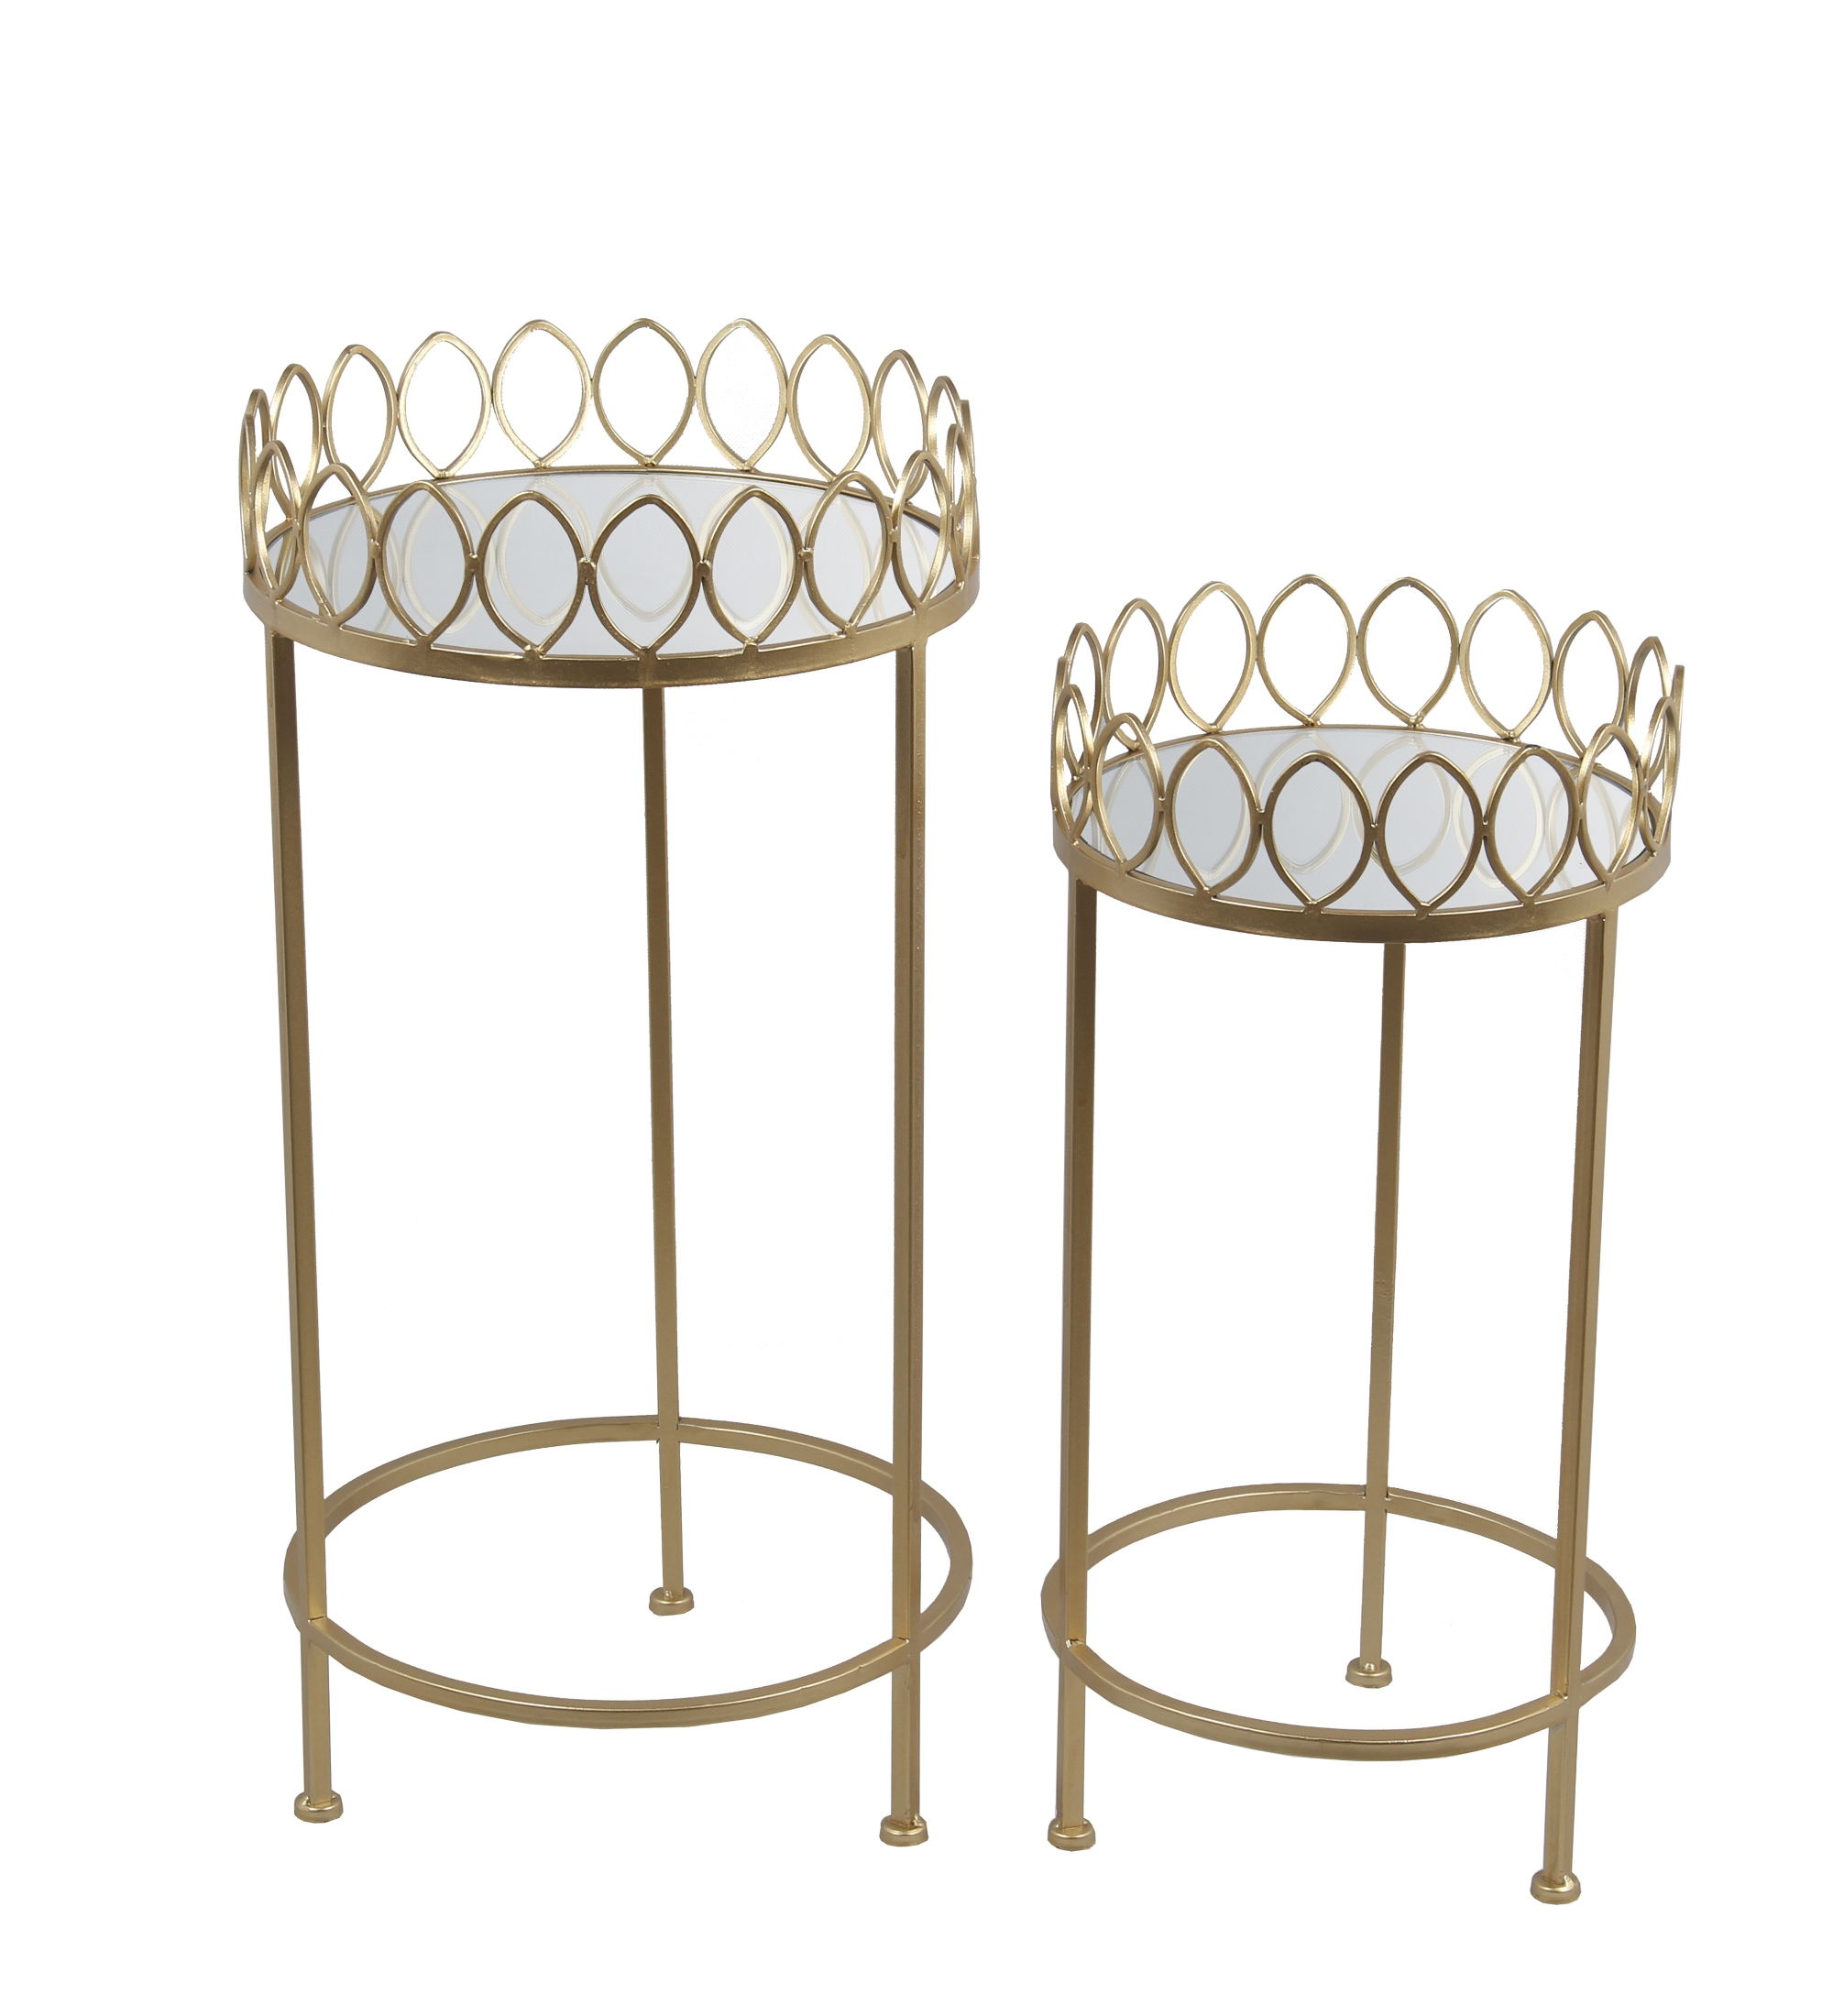 2 Pc Plant Stands - Iron